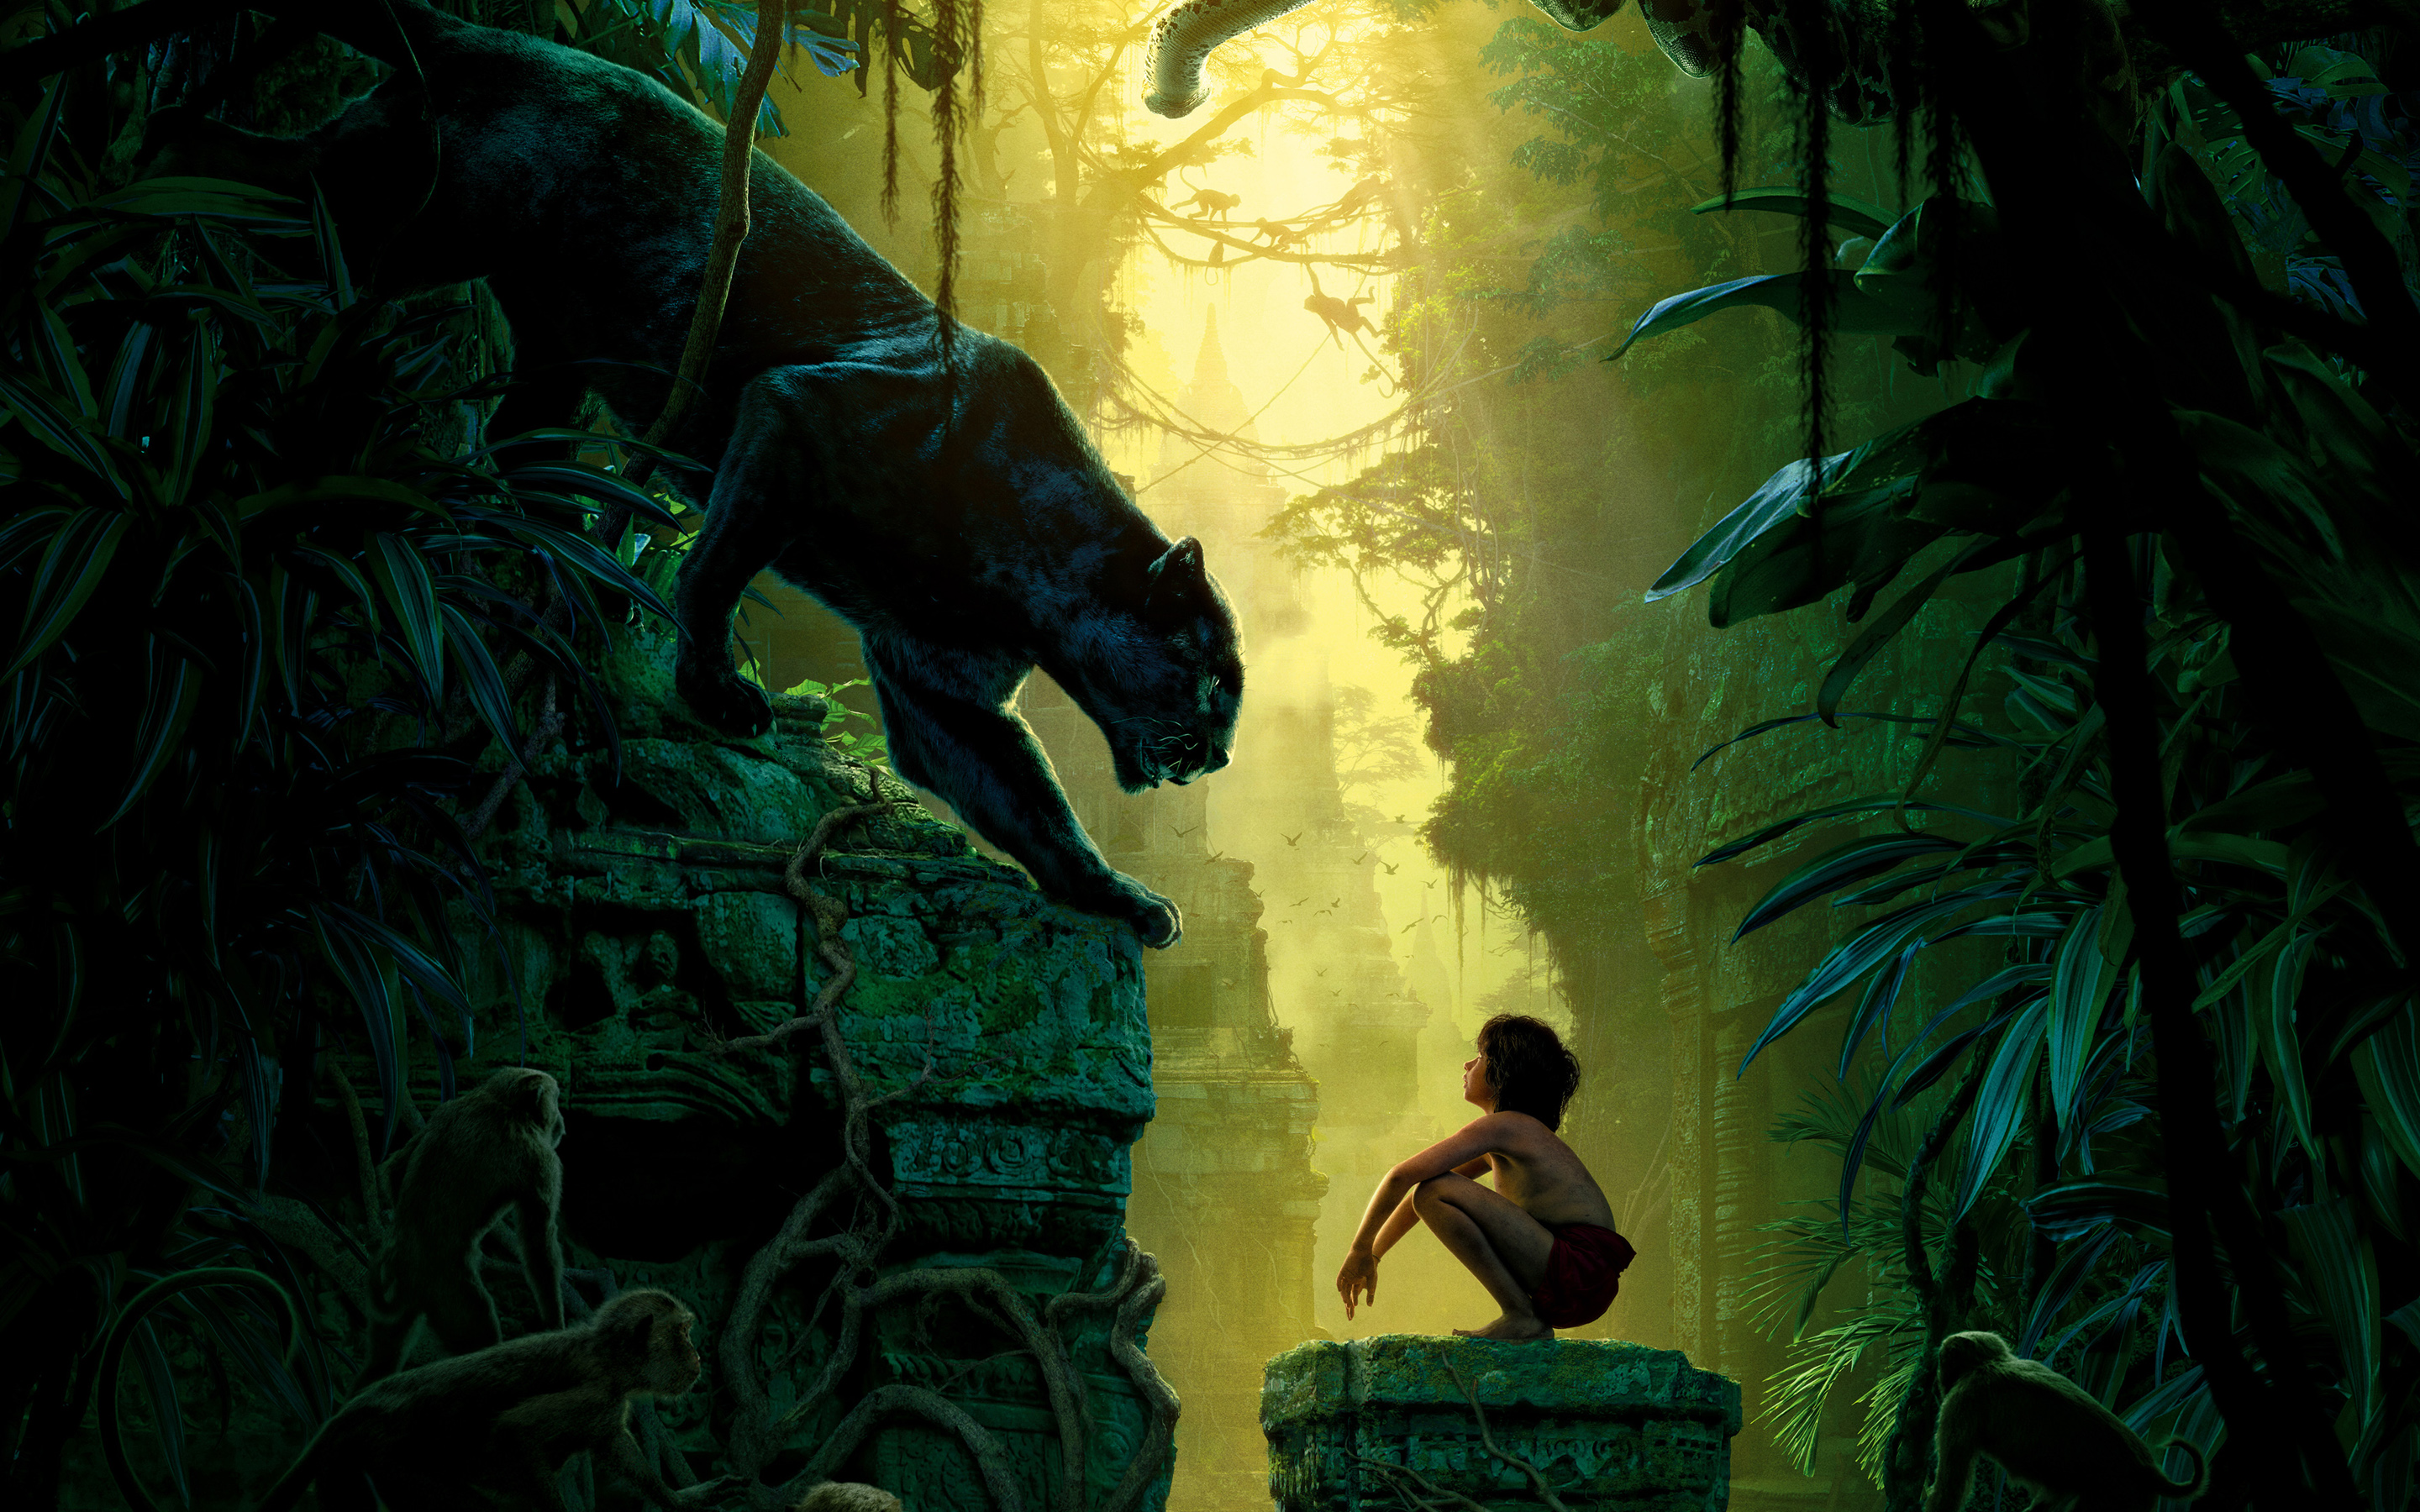 MOVIE REVIEW – 'The Jungle Book' re-animates a classic for a new generation